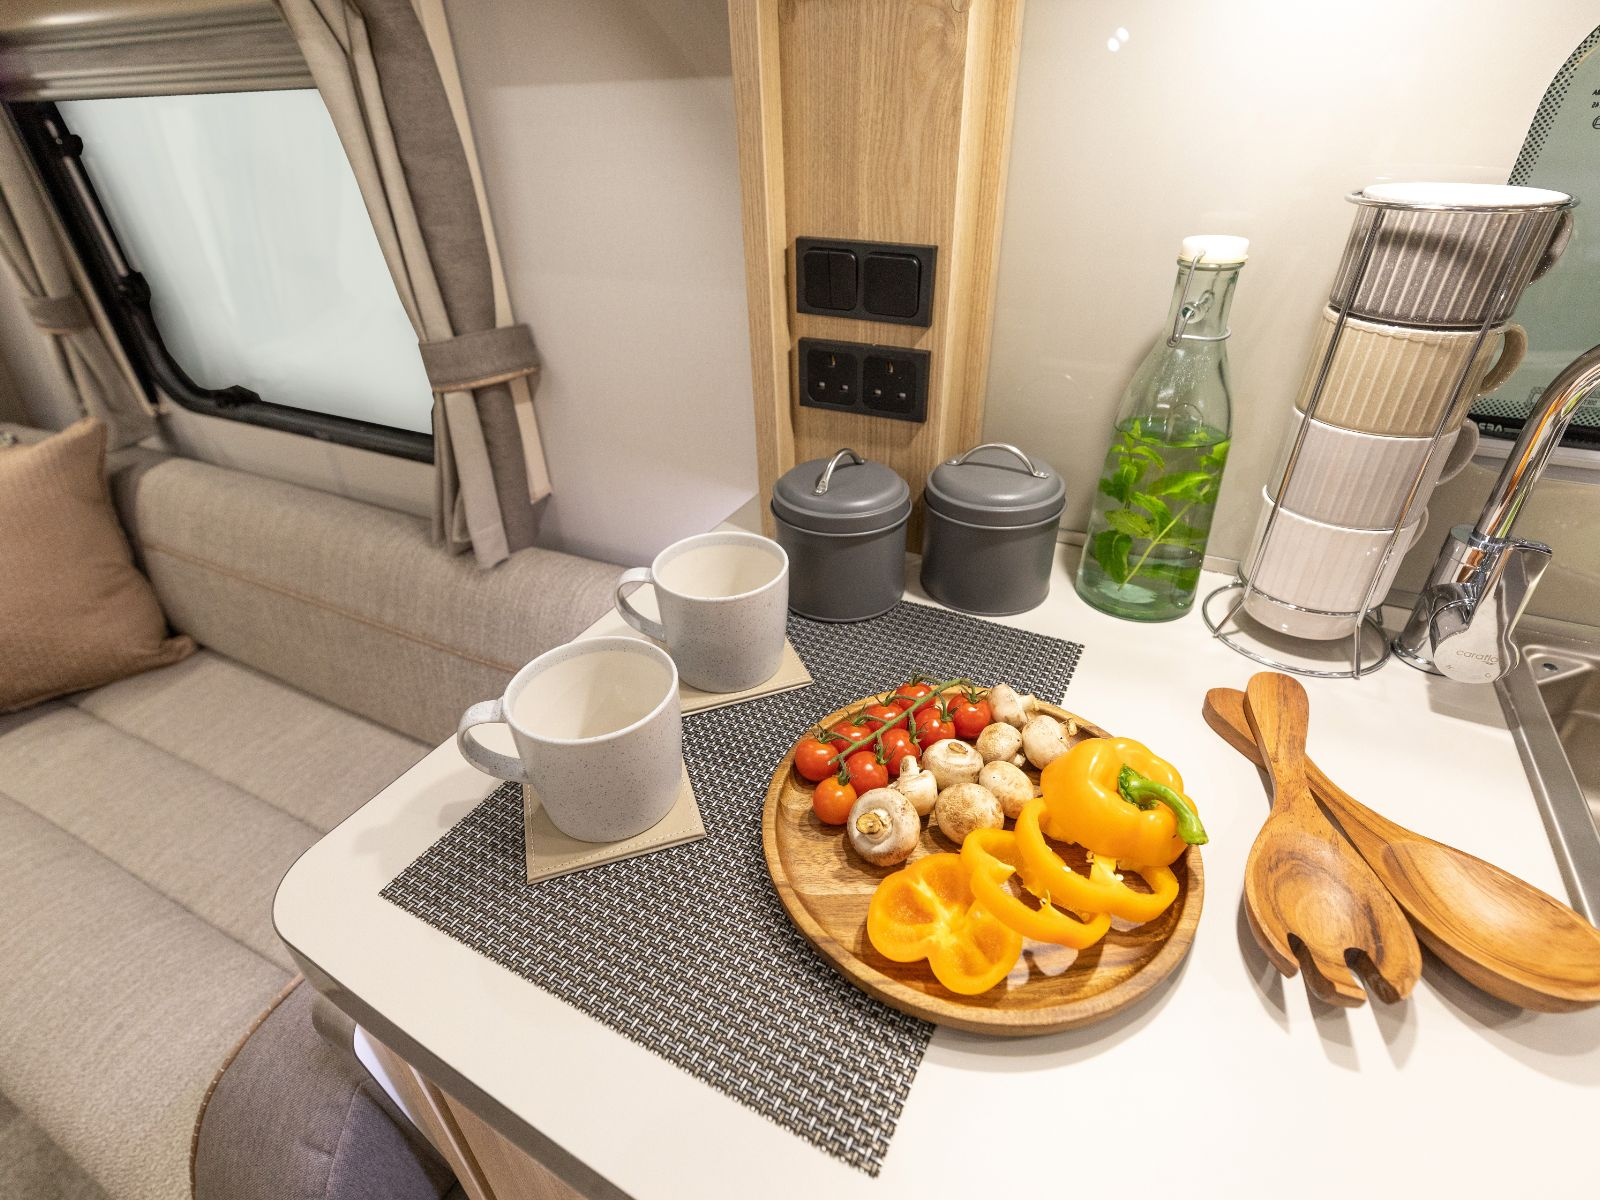 Food resting on kitchen counter with wooden utensils and coffee cups'